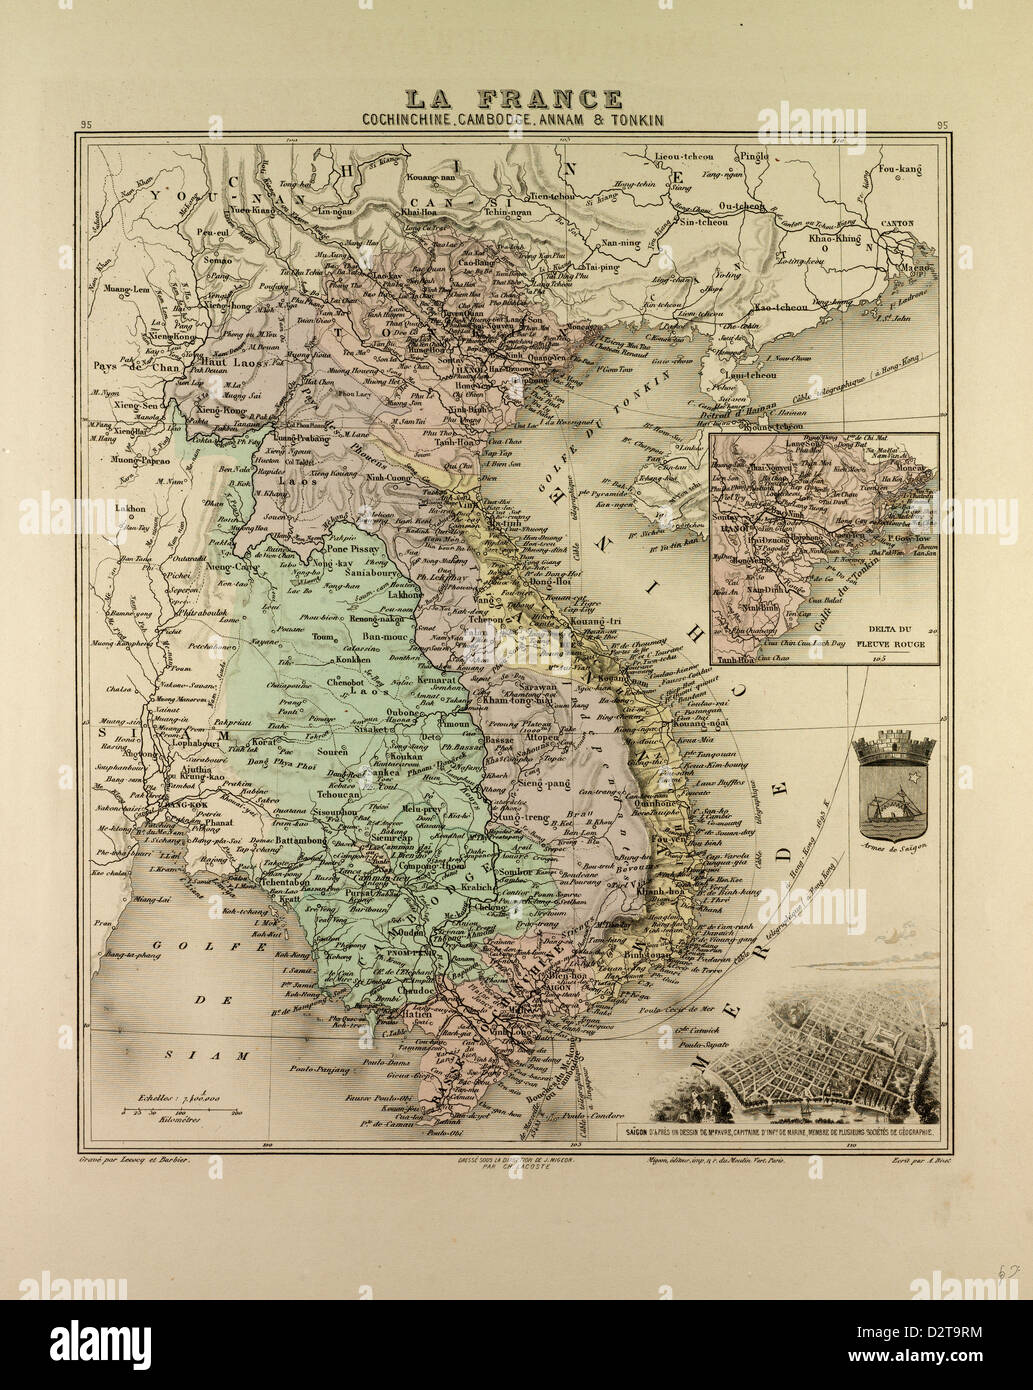 Map Of Cambodia Vietnam Thailand Laos Stock Photos & Map Of Cambodia Map Of Vietnam And Laos on map of hong kong and vietnam, map of india and vietnam, map of indonesia and vietnam, map of asia and vietnam, map of singapore and vietnam, map of vietnam and china, map of korea and vietnam, map of cambodia and vietnam, map of france and vietnam, map of philippines and vietnam, map of guam and vietnam, map of indochina and vietnam, map of thailand and vietnam, map of world and vietnam, map of australia and vietnam,